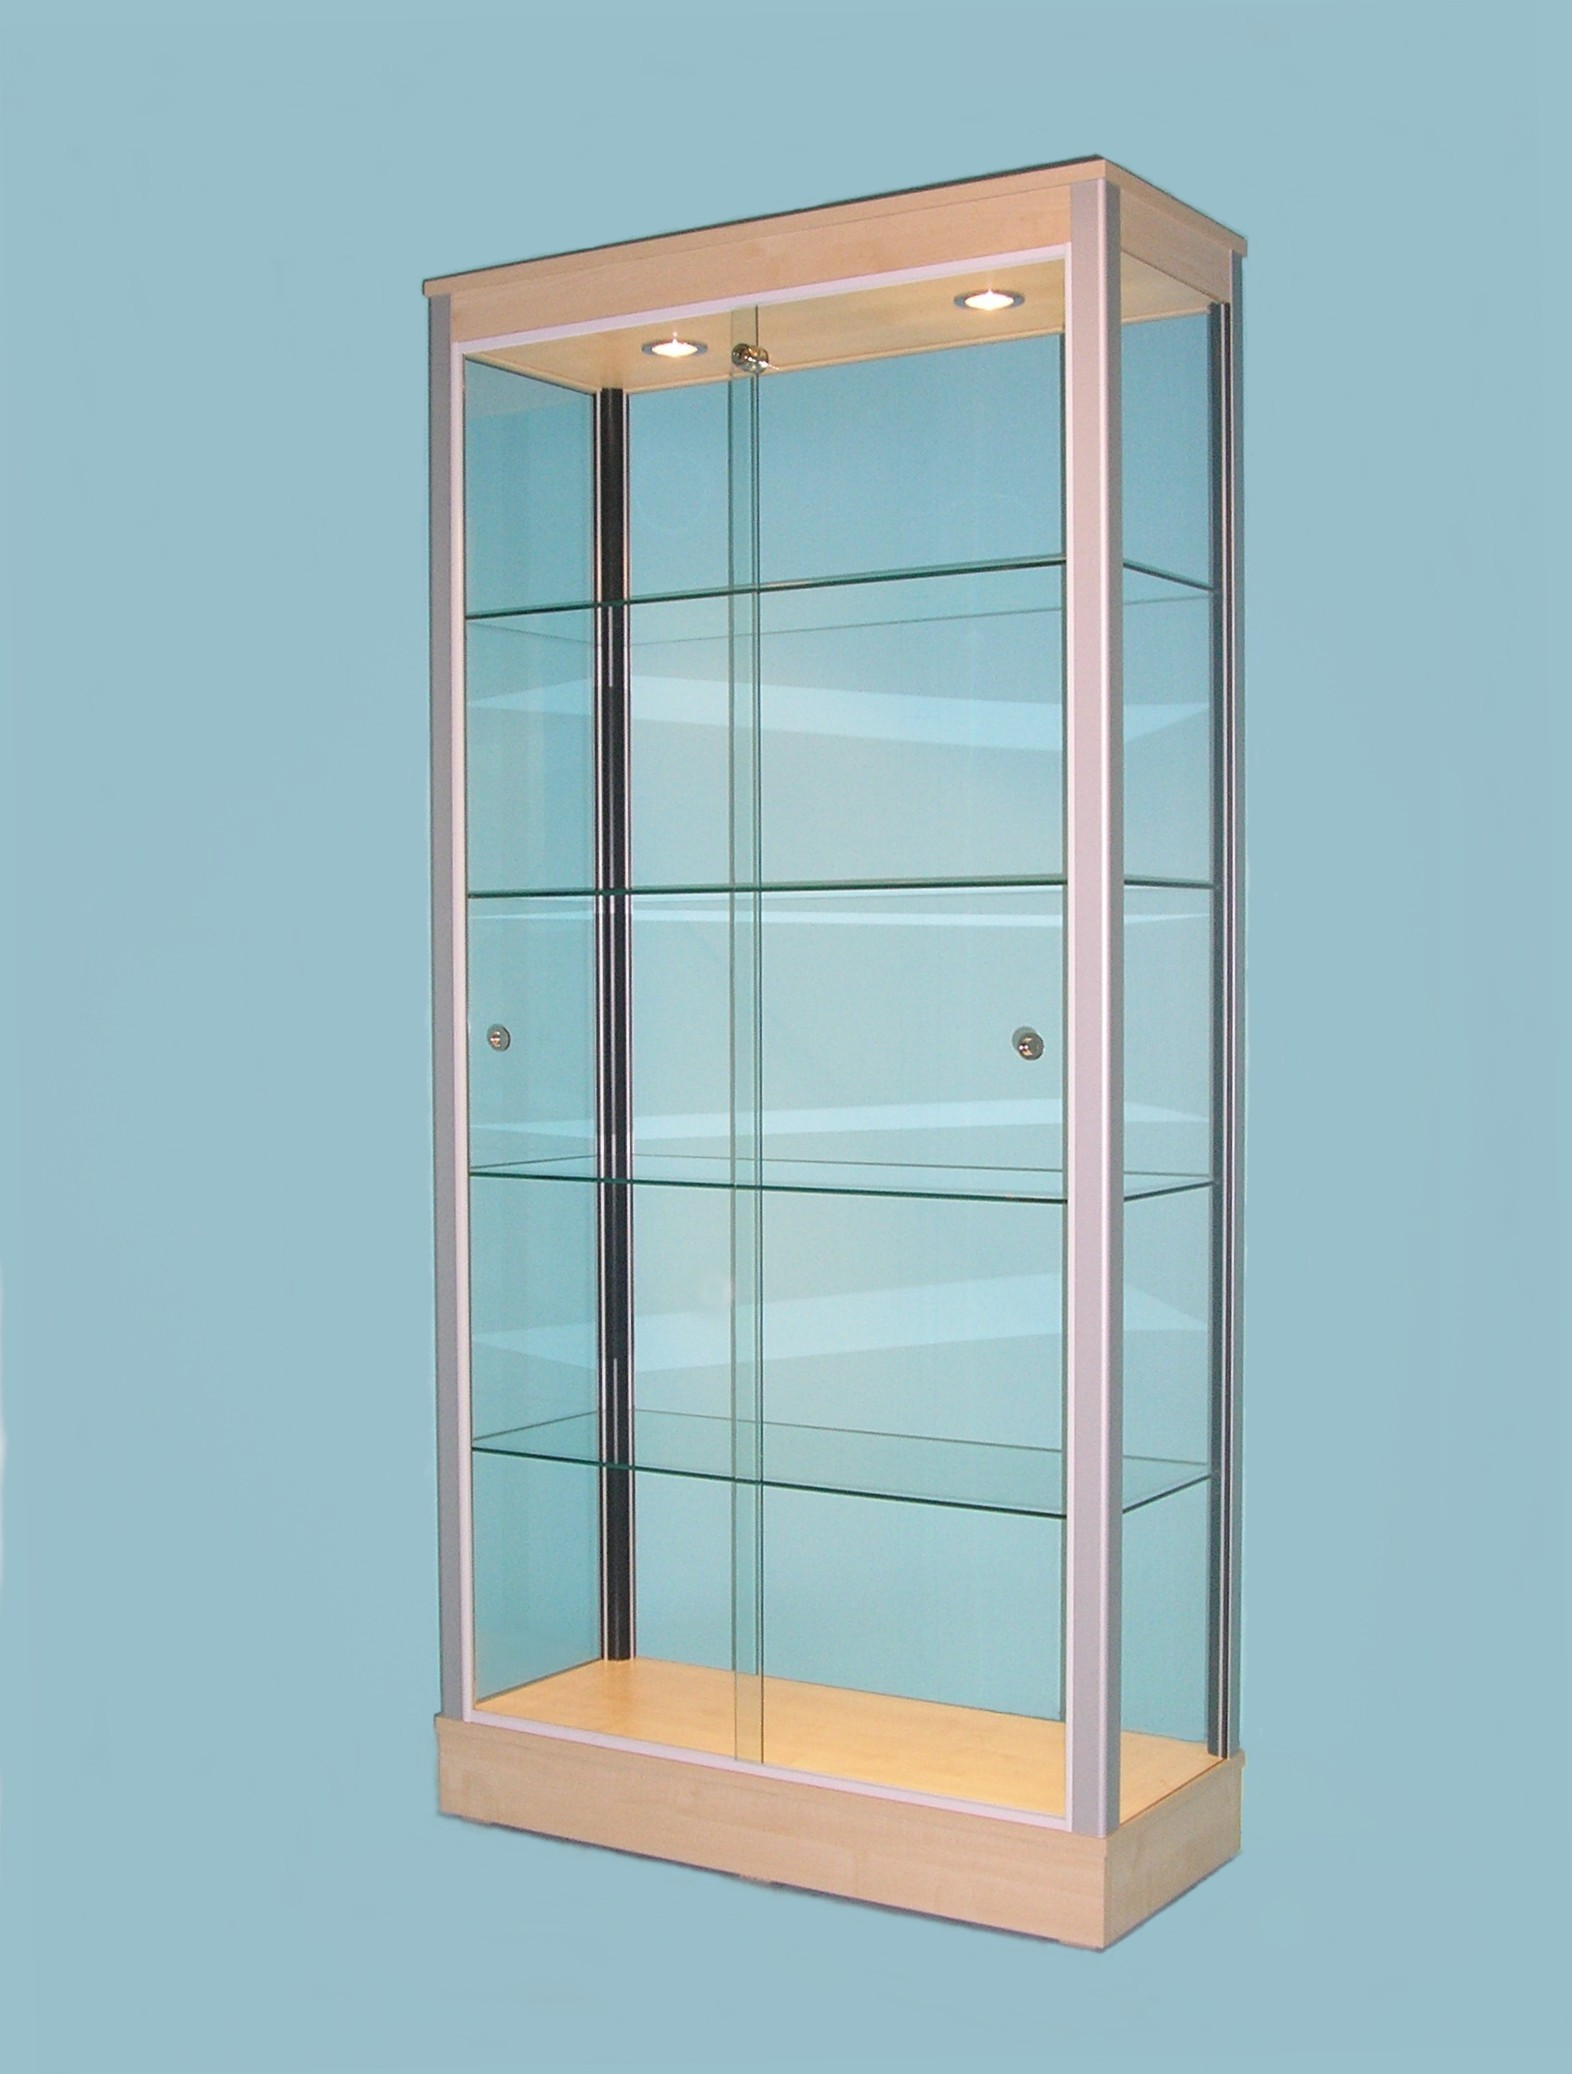 Dobhaltechnologiescom Glass Display Cabinets